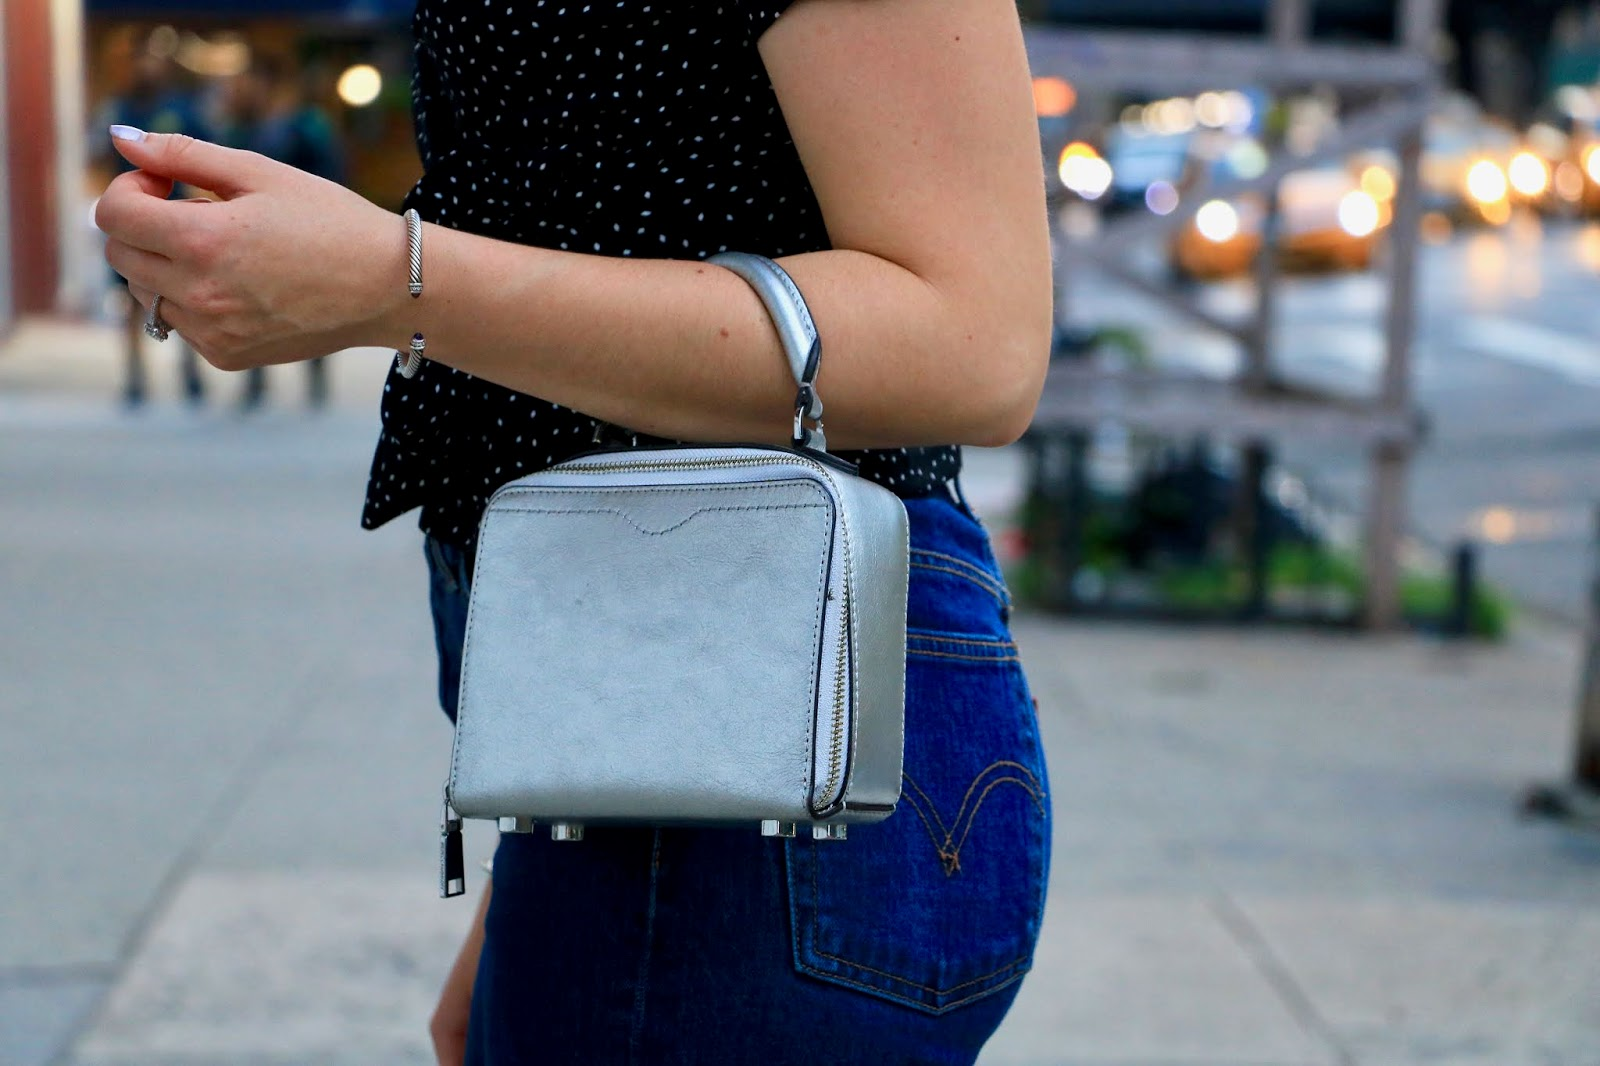 Nyc fashion blogger Kathleen Harper wearing a silver Rebecca Minkoff top handle purse.